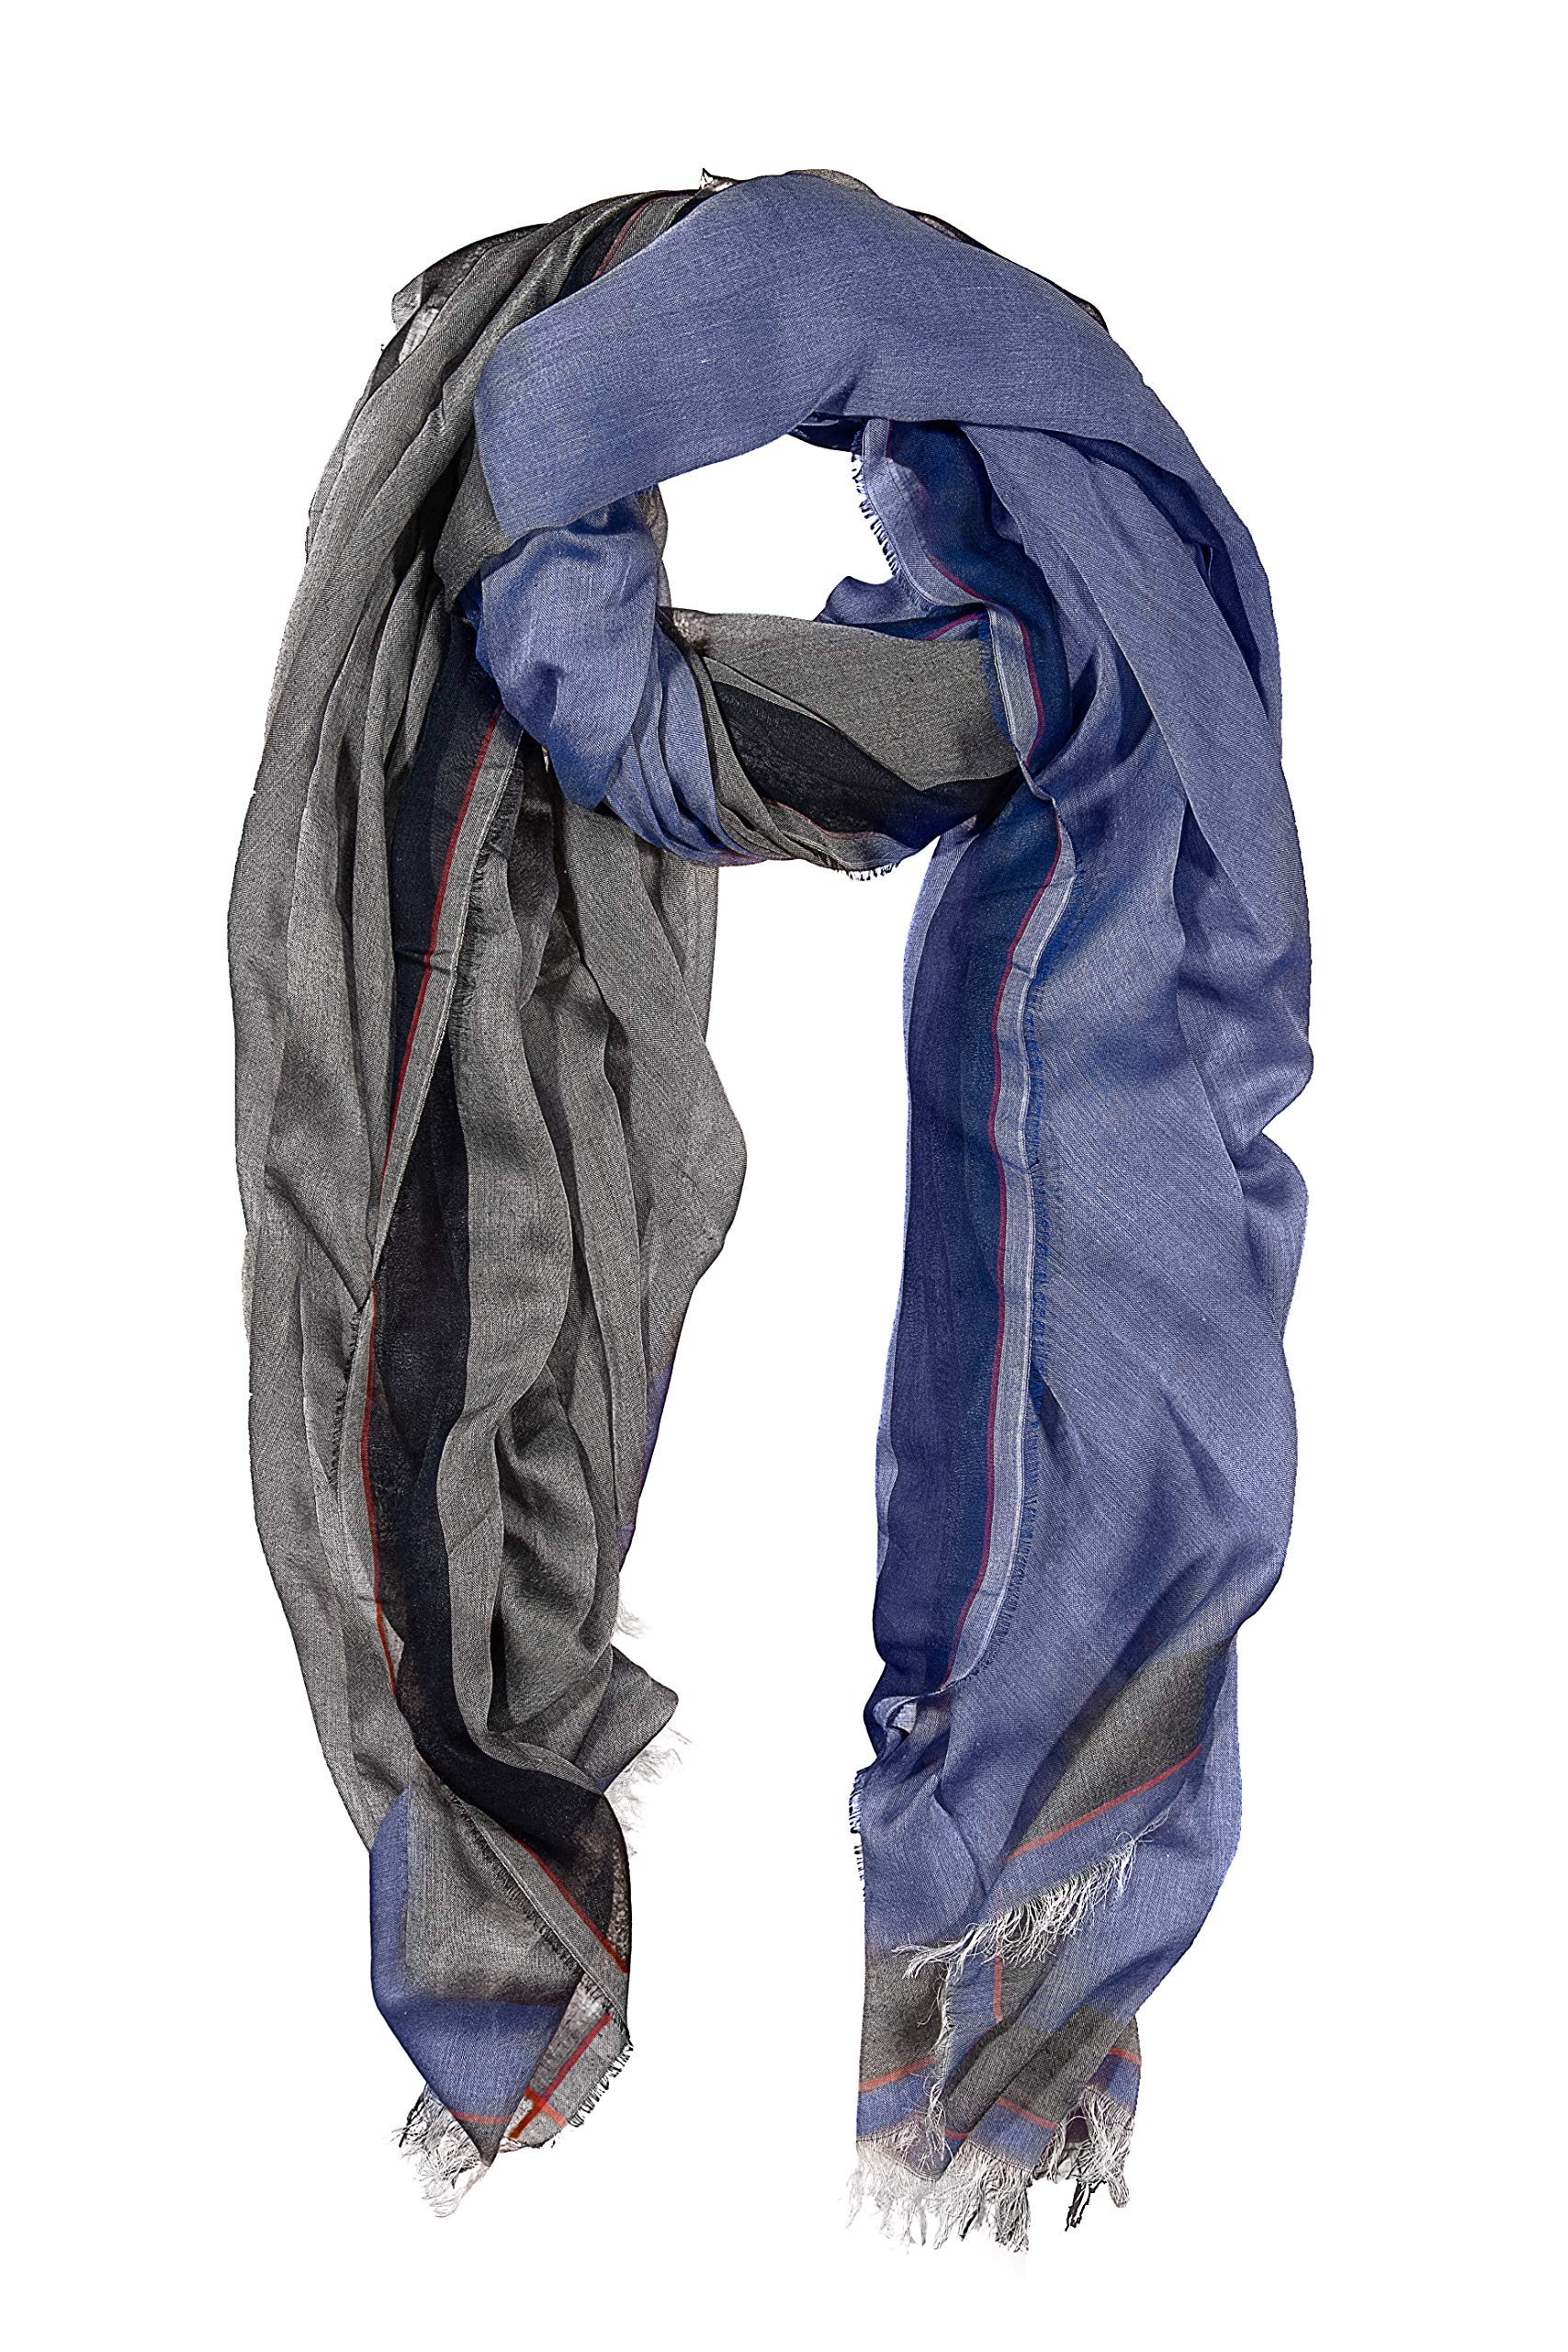 GIULIA BIONDI Scarf Shawl Stole Wrap Soft Large Long Lightweight for Women and Men MADE IN ITALY (Blue)